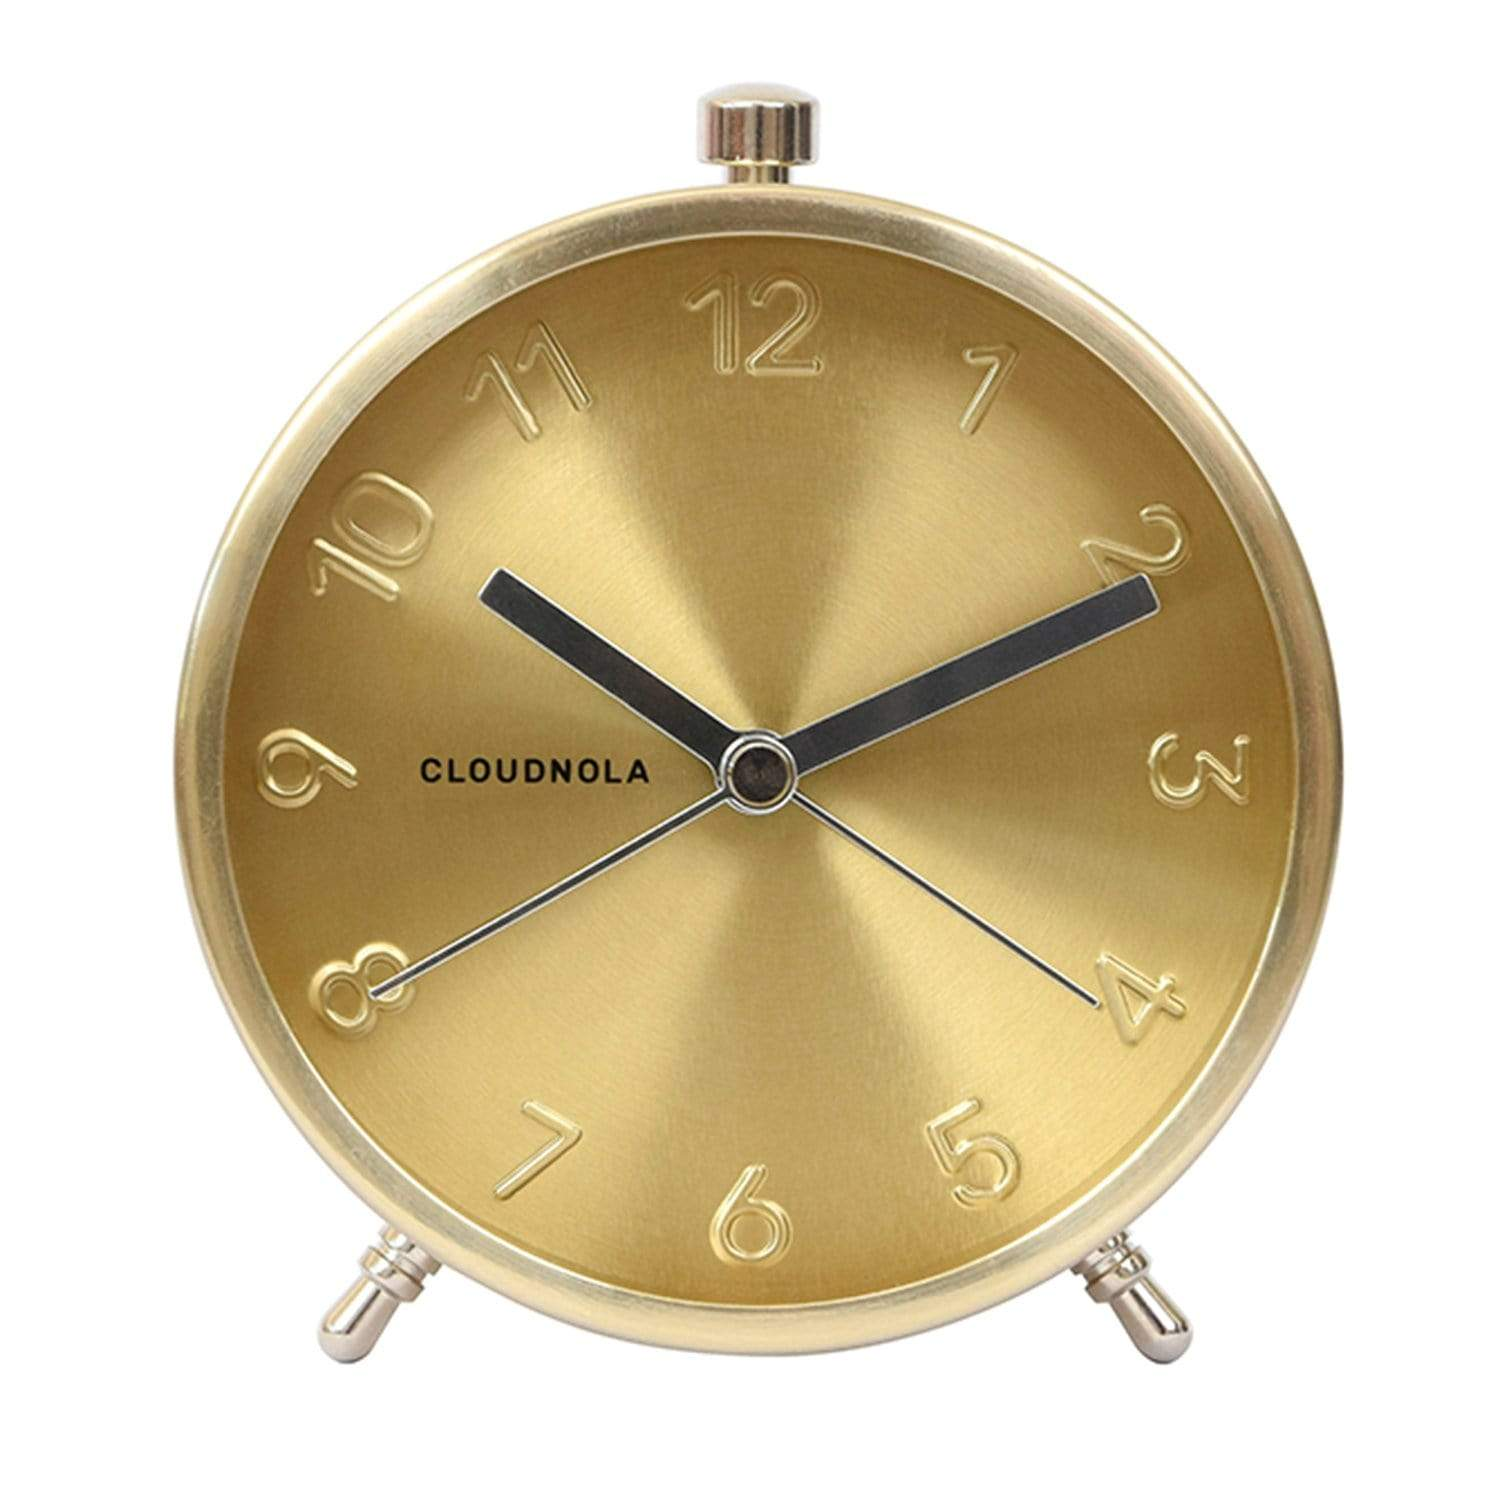 cloudnola Wall Clock Glam Gold Alarm Clock